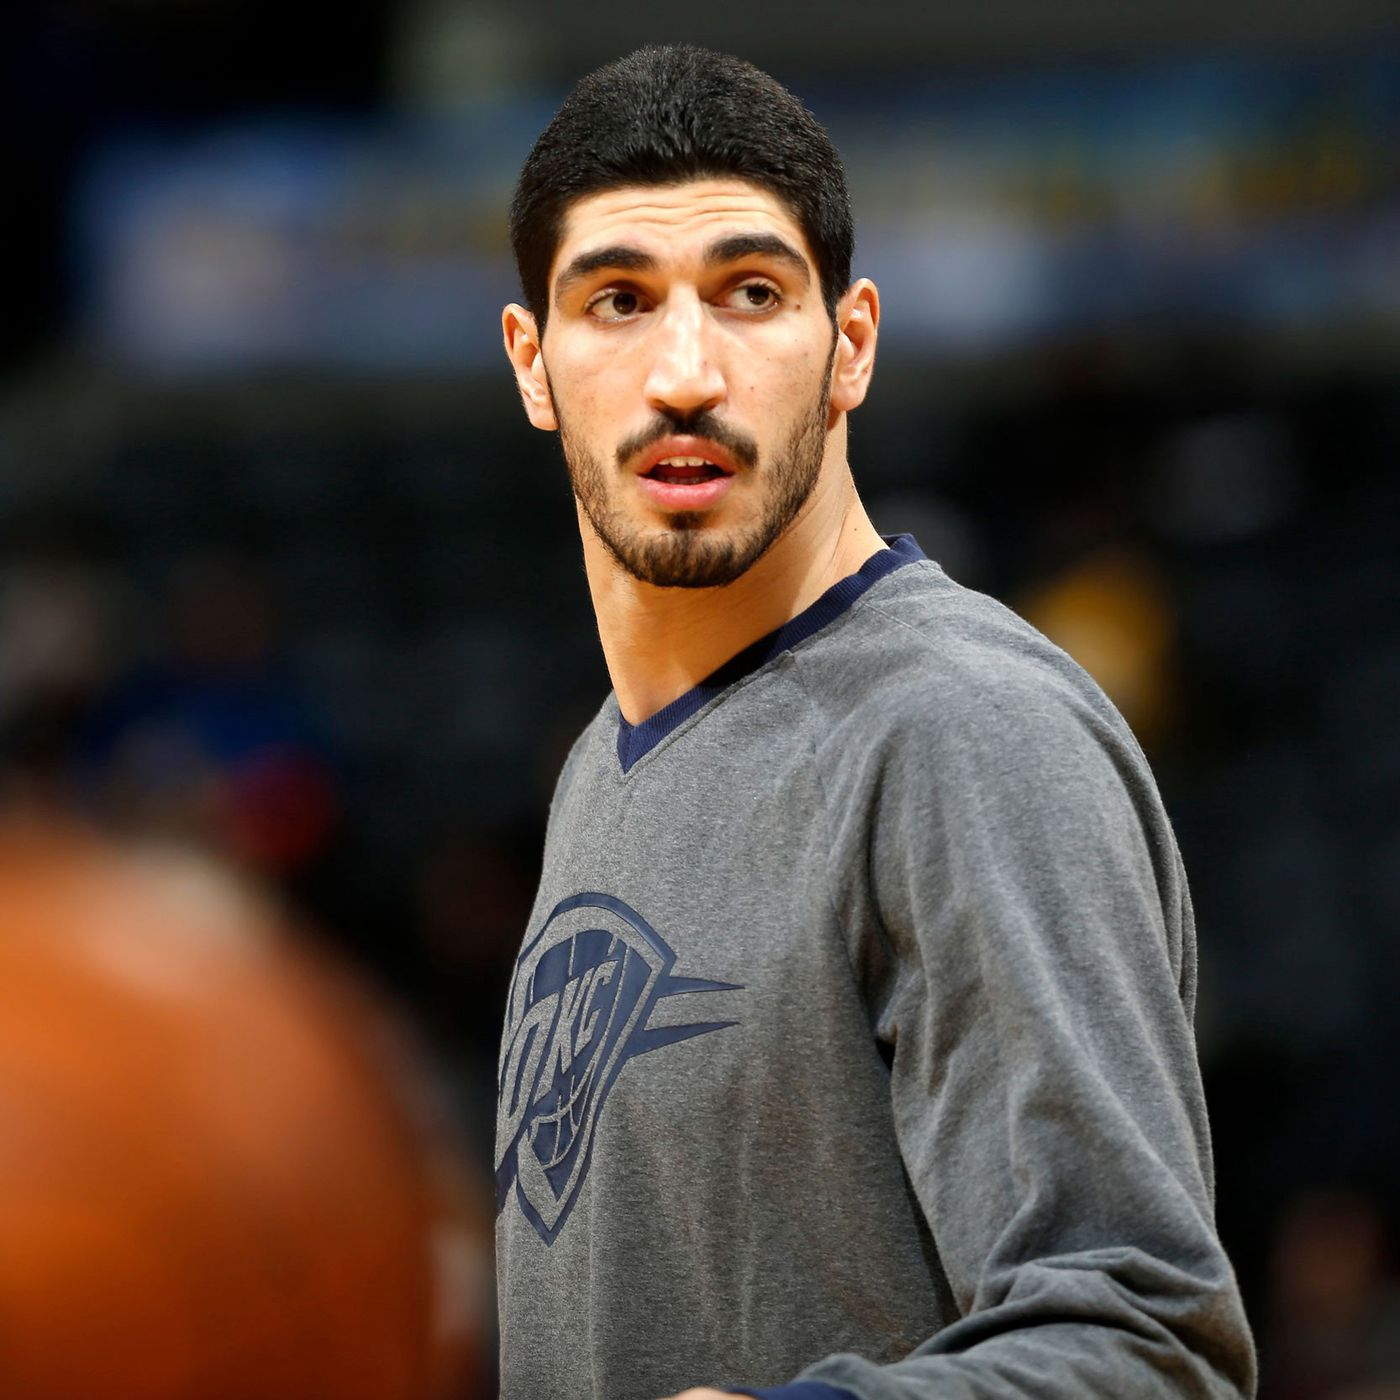 Enes kanter plus minus betting man bets on tiger woods